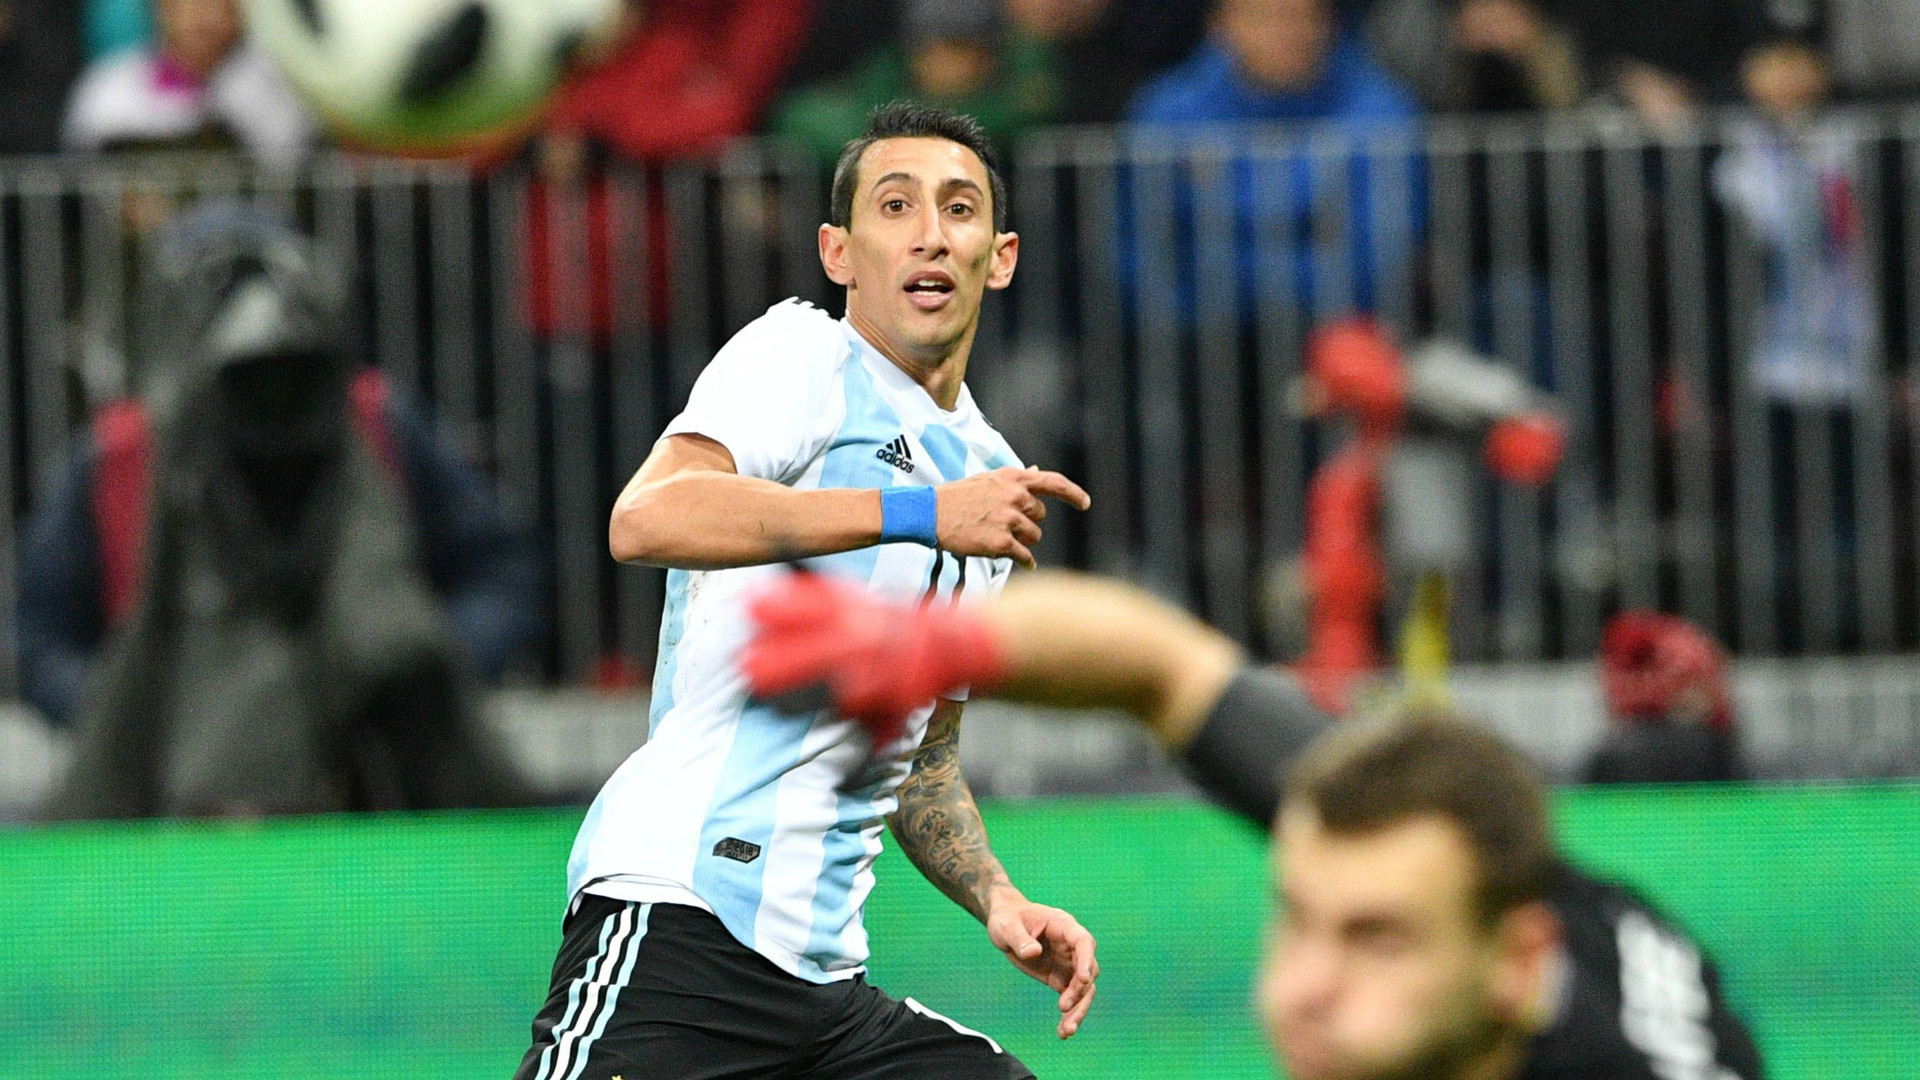 Sergio Aguero collapsed, rushed to hospital — Argentina vs Nigeria